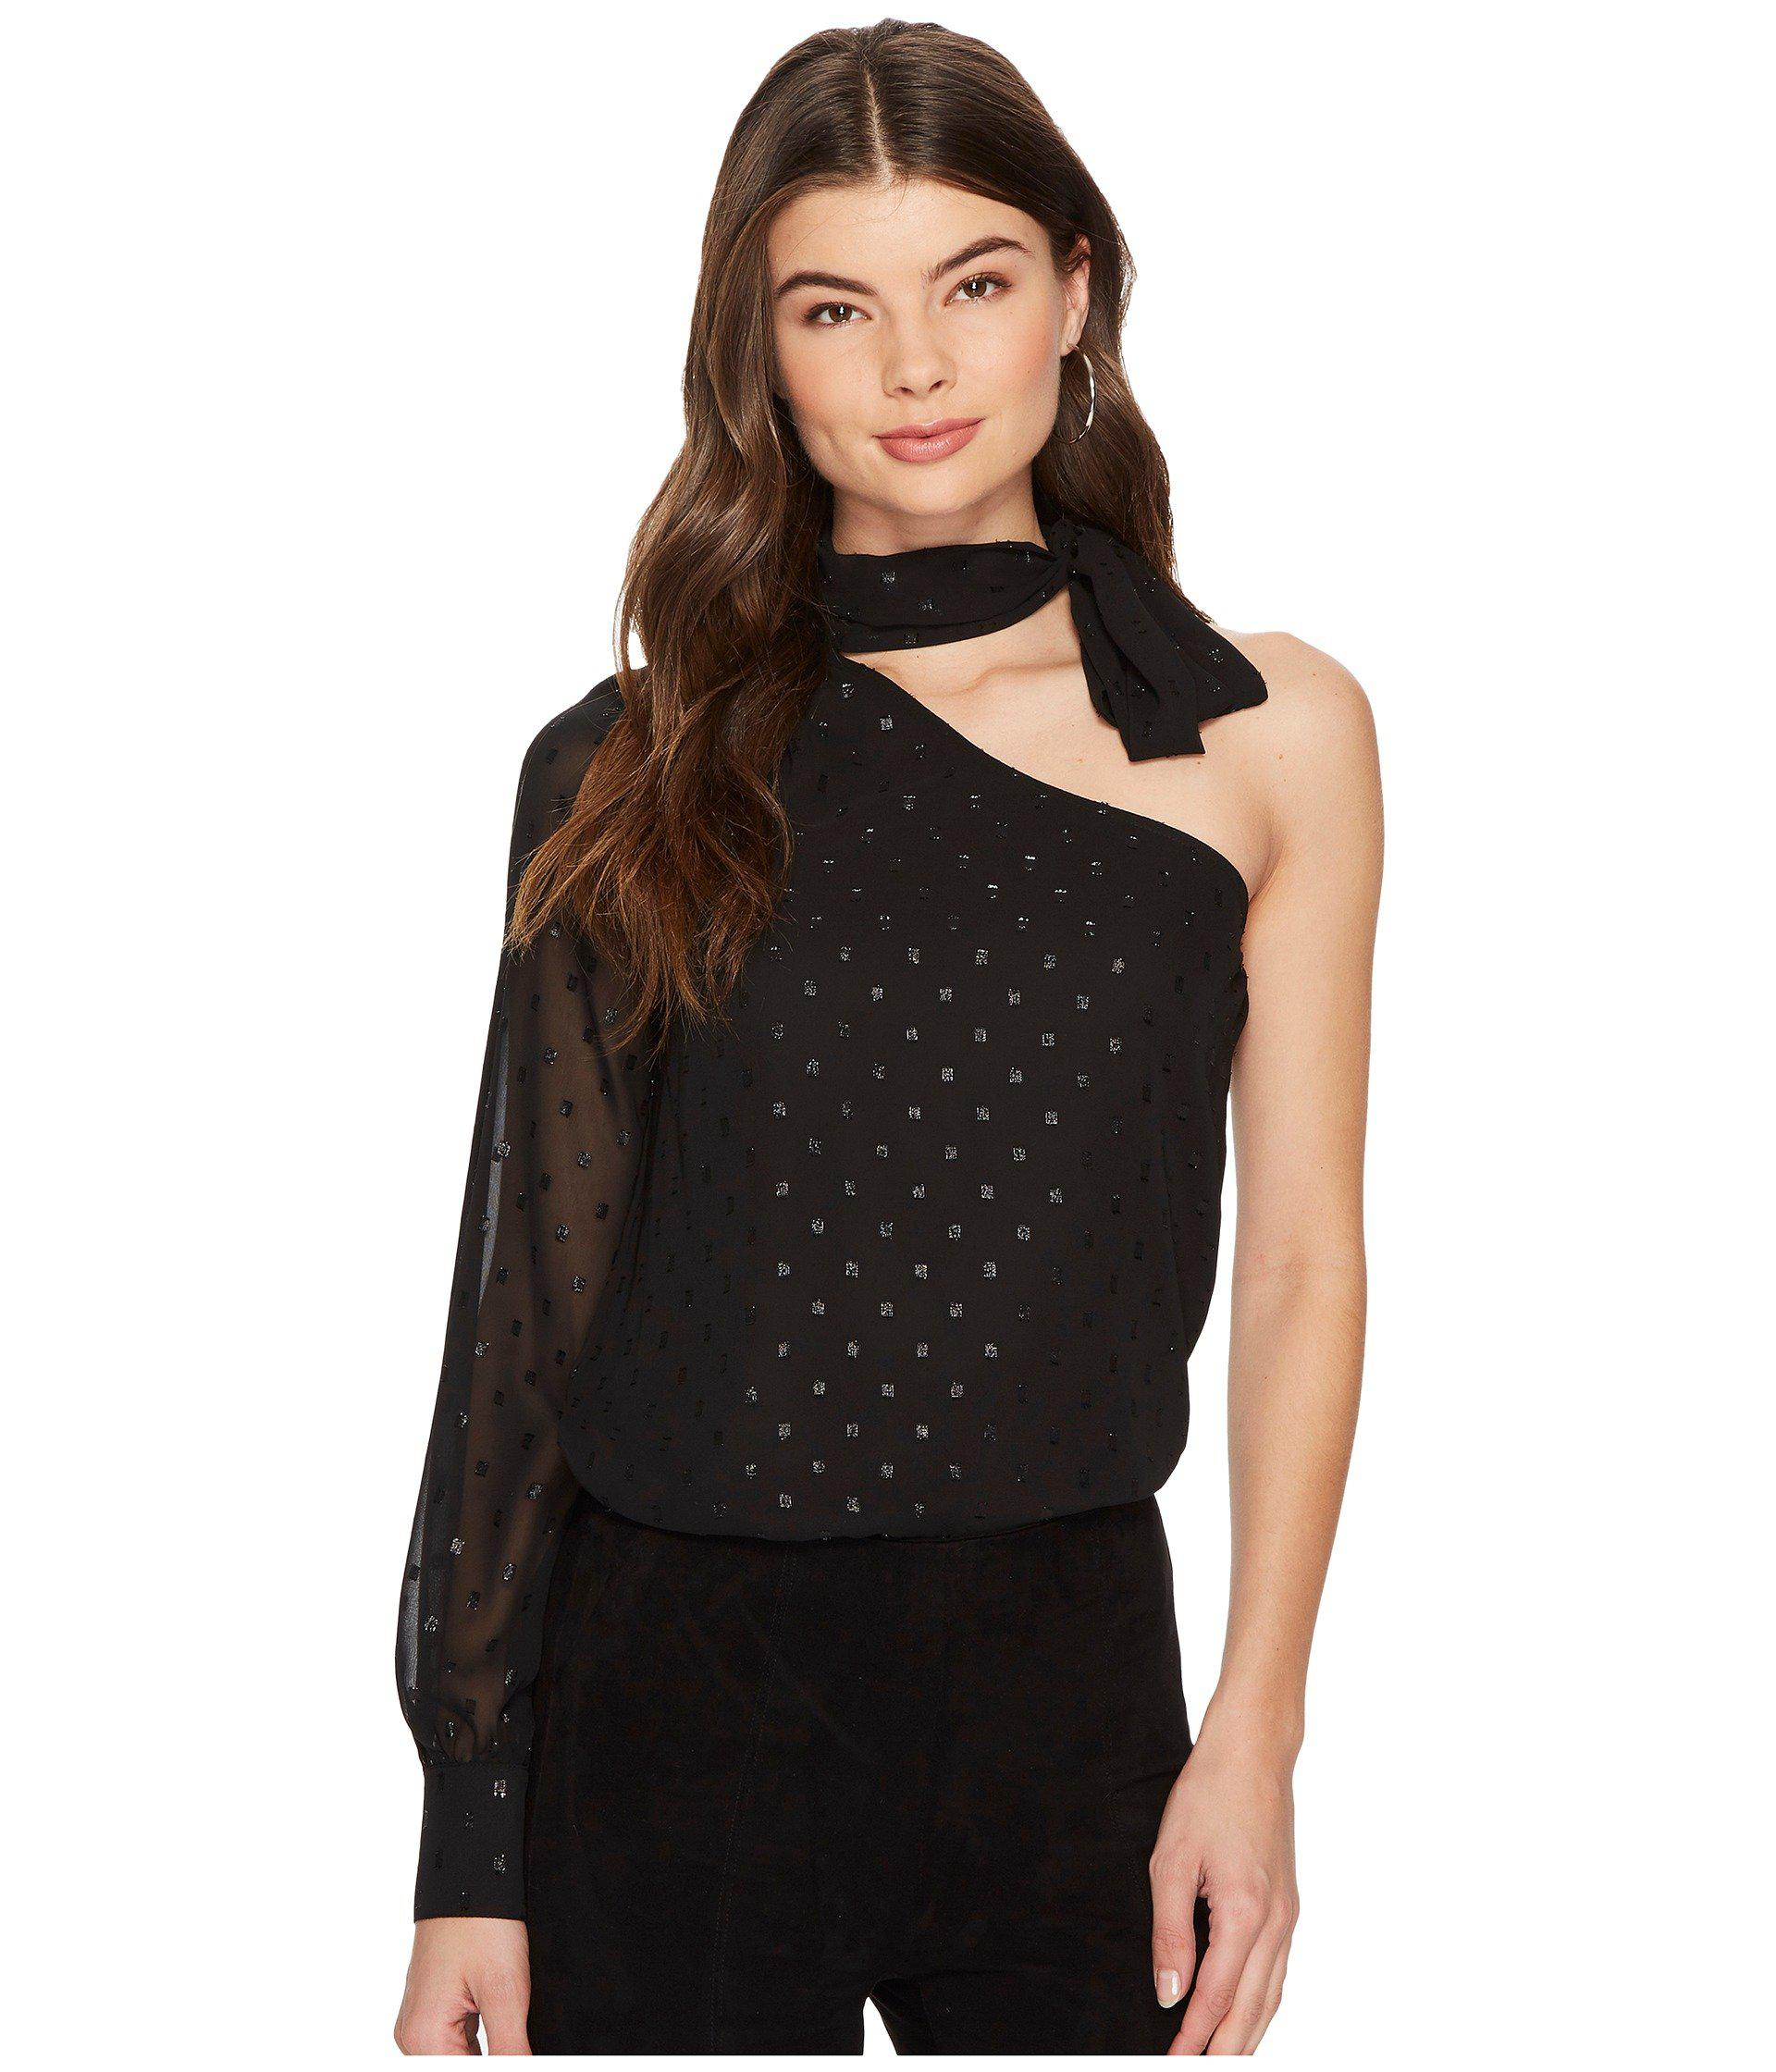 c8f59e8674feb Lyst - 1.STATE One Shoulder Blouse With Tie Neck in Black